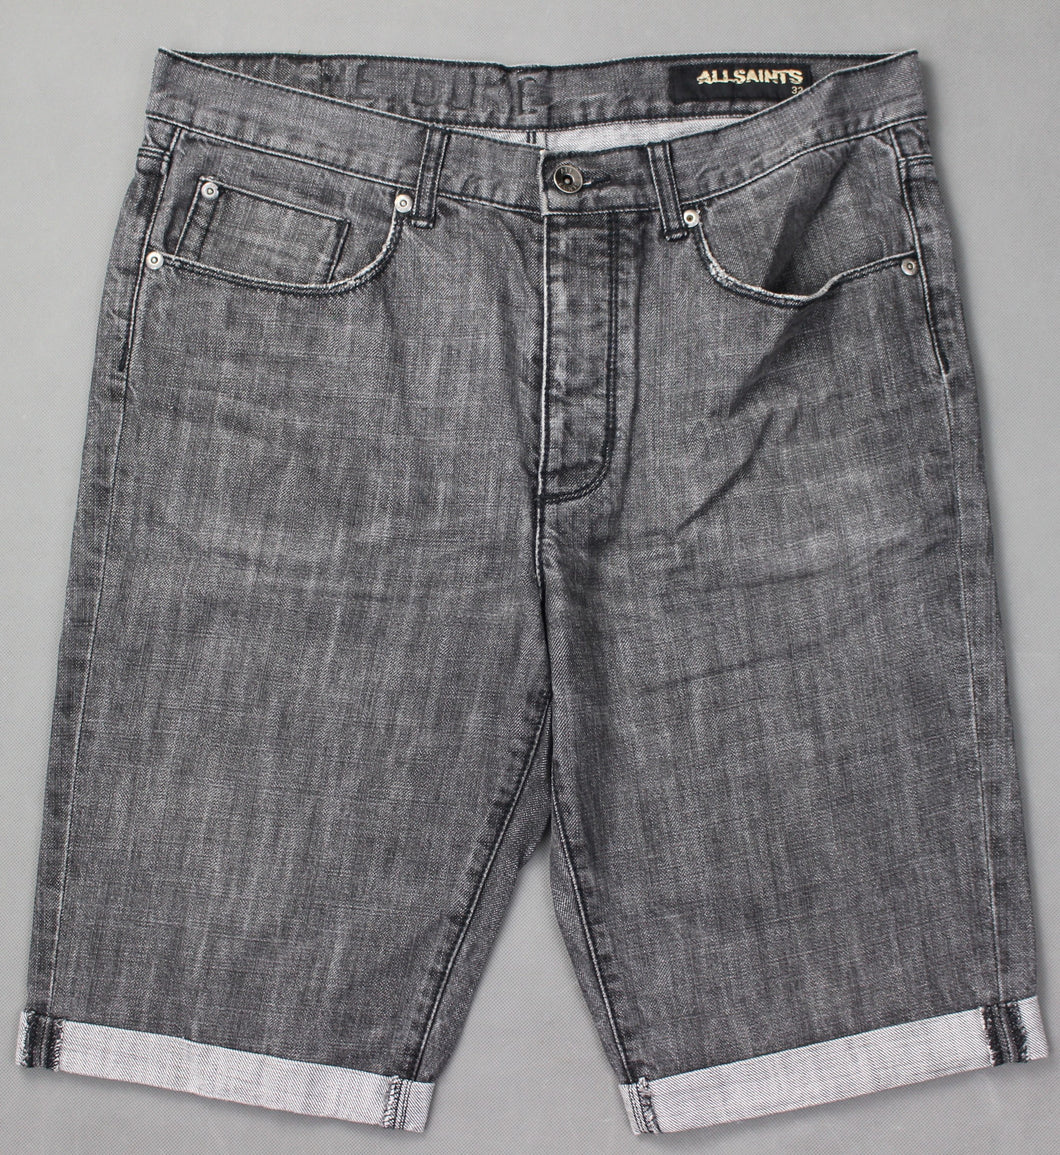 ALLSAINTS Mens Grey Denim CASSIDY DUKE FIT SHORTS - Size Waist 32